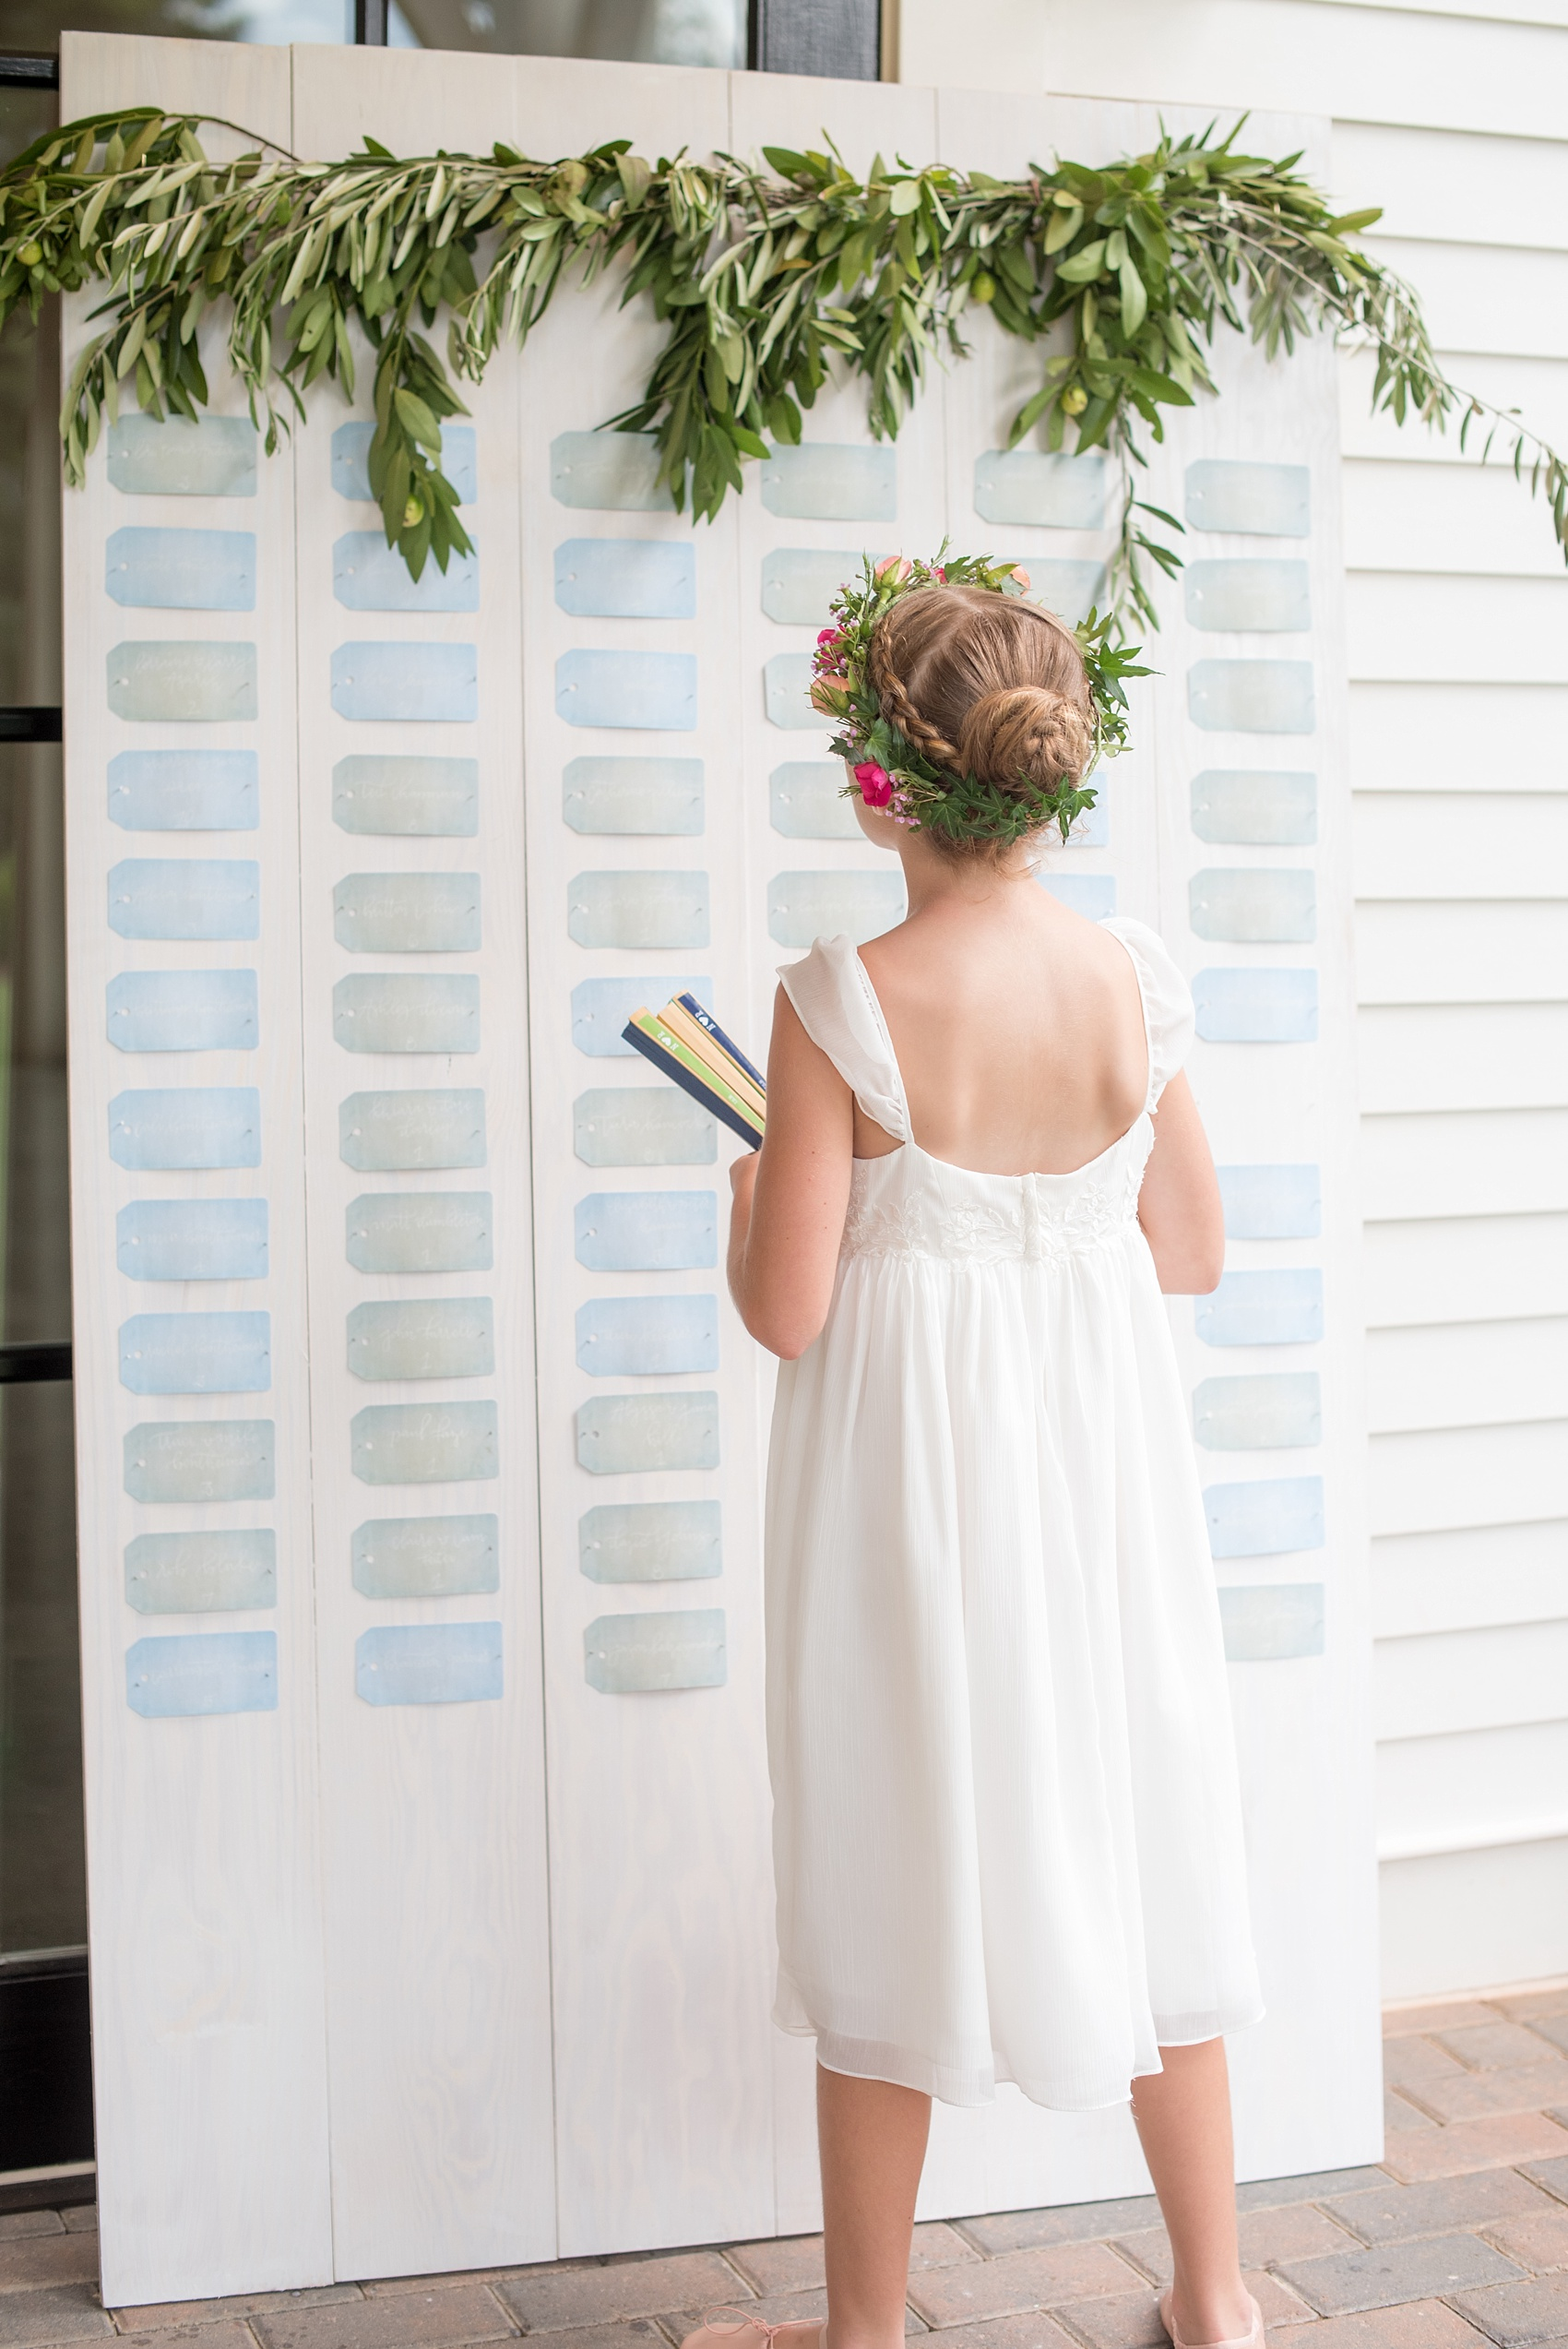 Mikkel Paige Photography wedding photos at The Merrimon-Wynne House in downtown Raleigh. A picture of the guest escort card board with blue and green tags with white calligraphy and eucalyptus garland.